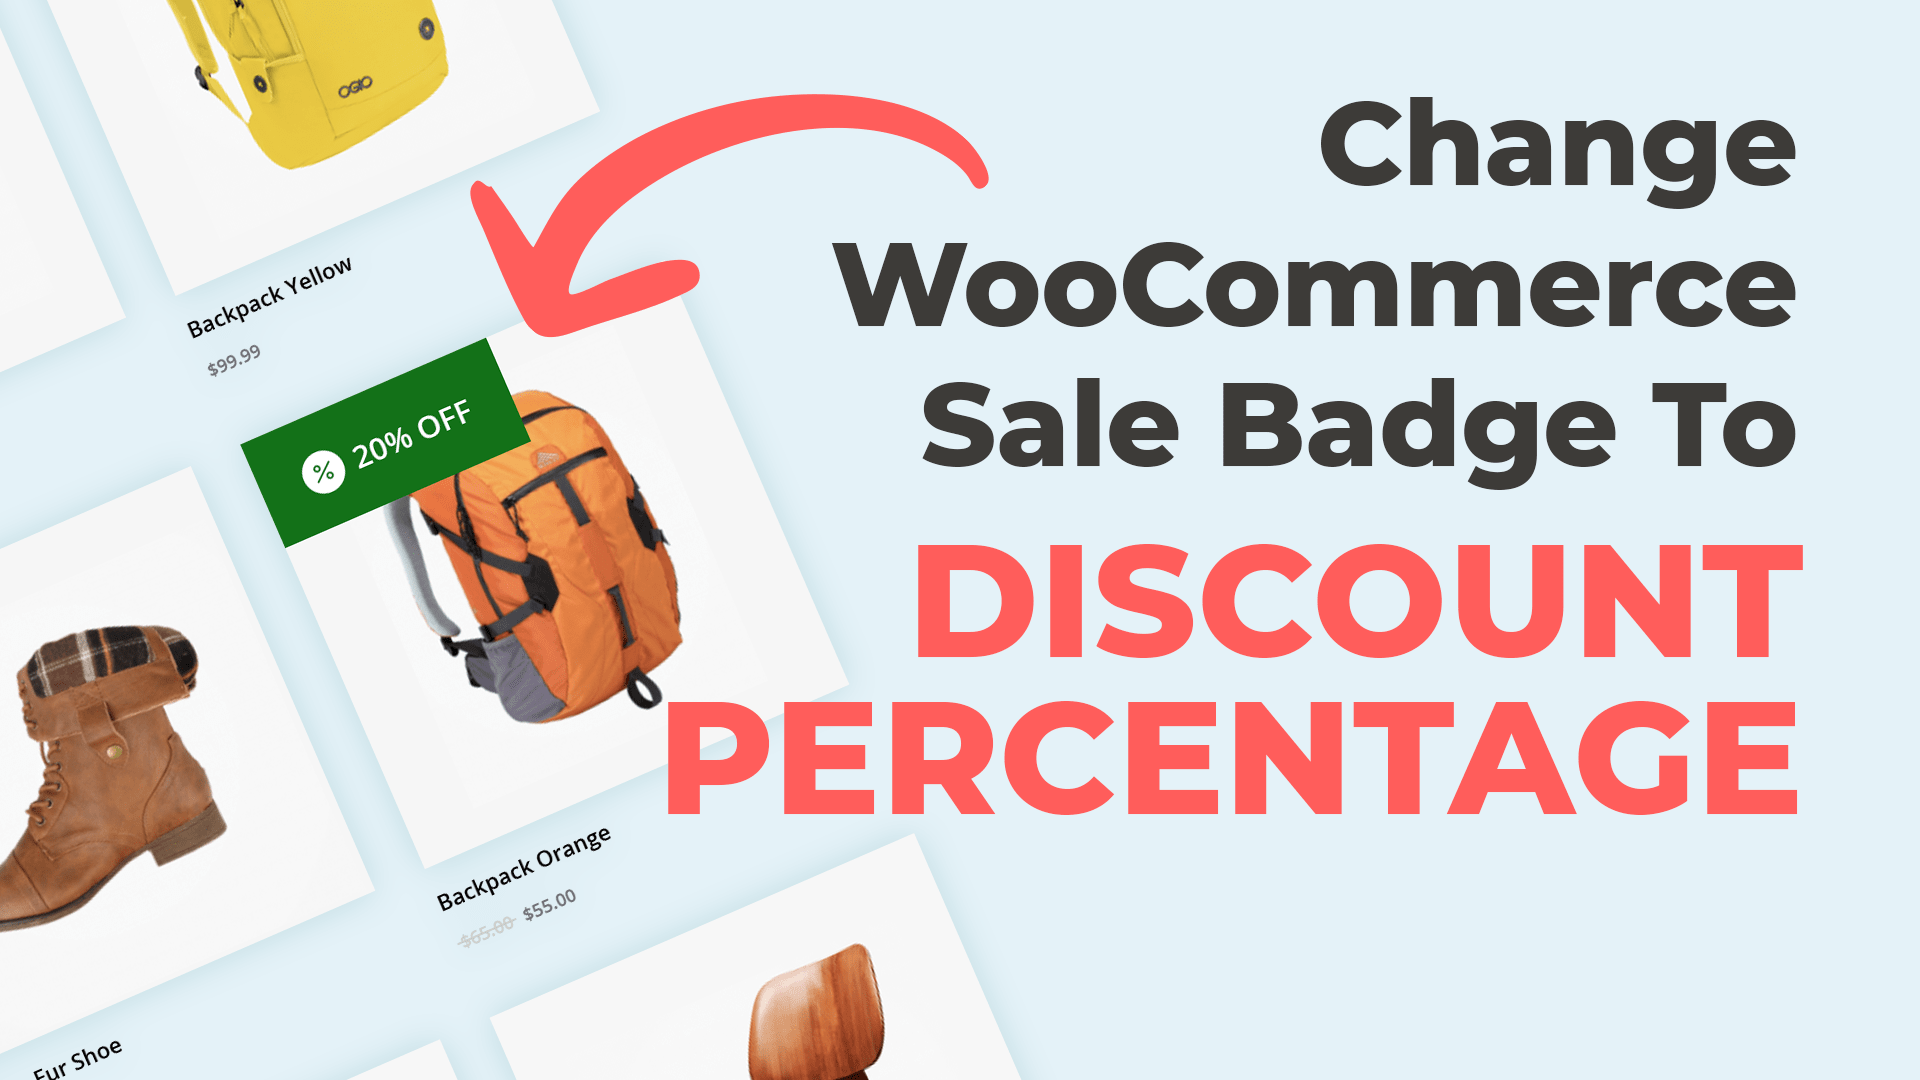 Change the WooCommerce Sale Badge to Display a Percentage Discount